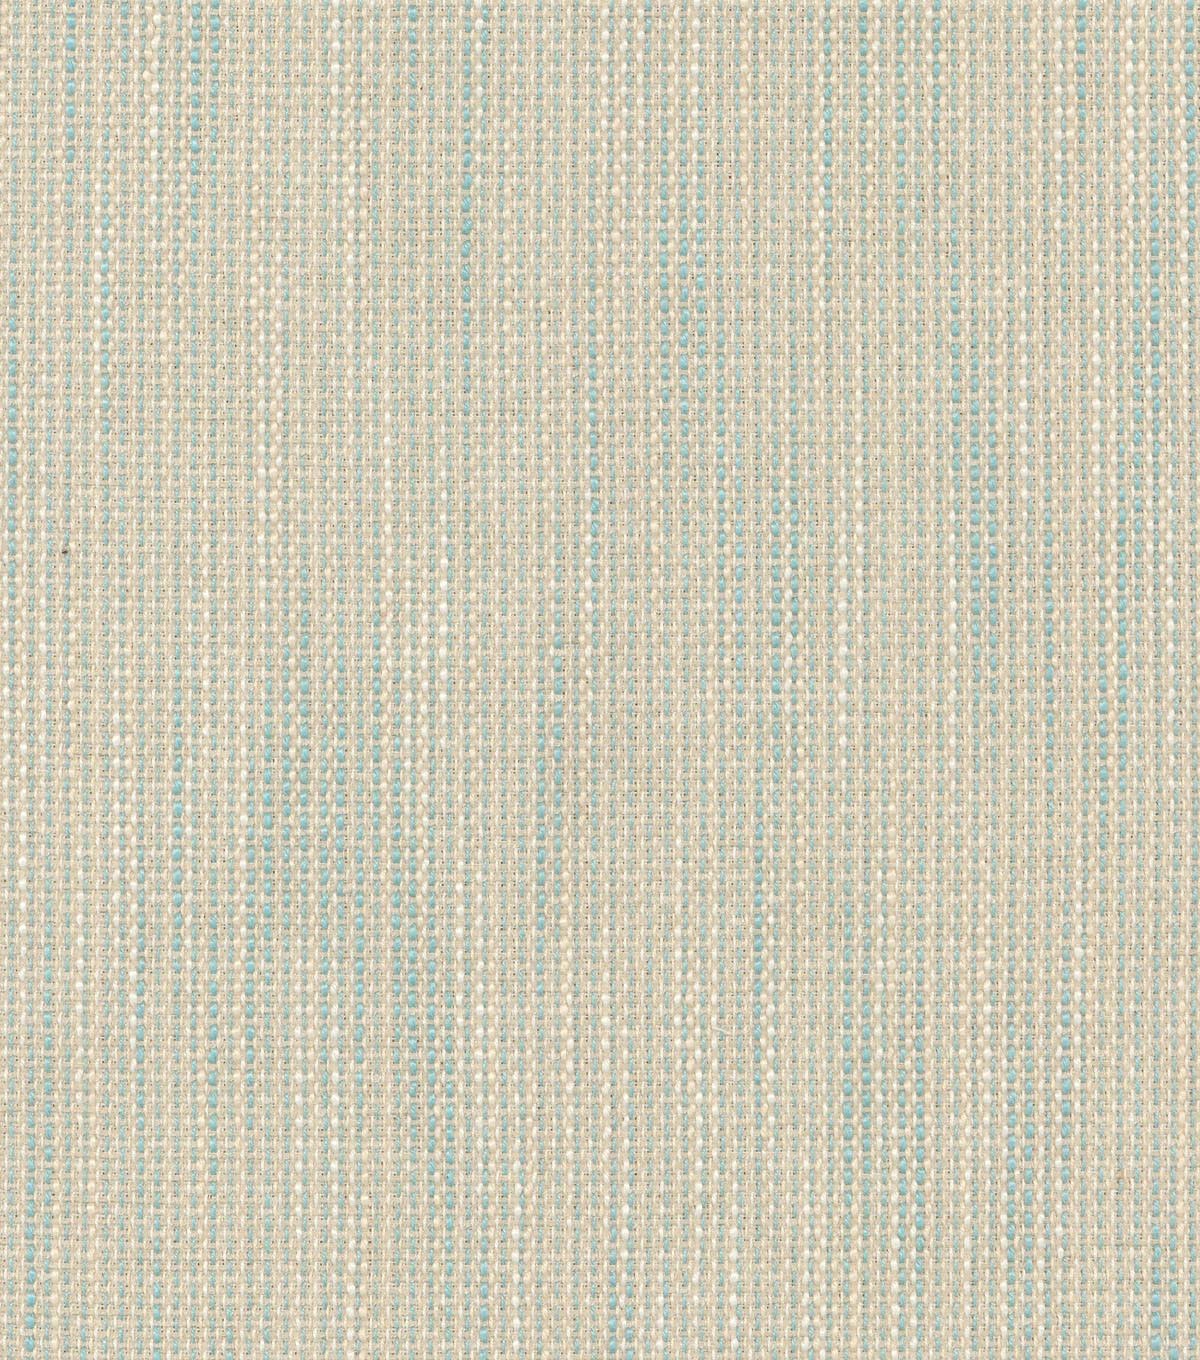 Home Decor 8\u0022x8\u0022 Swatch Fabric-Waverly Varick Pool